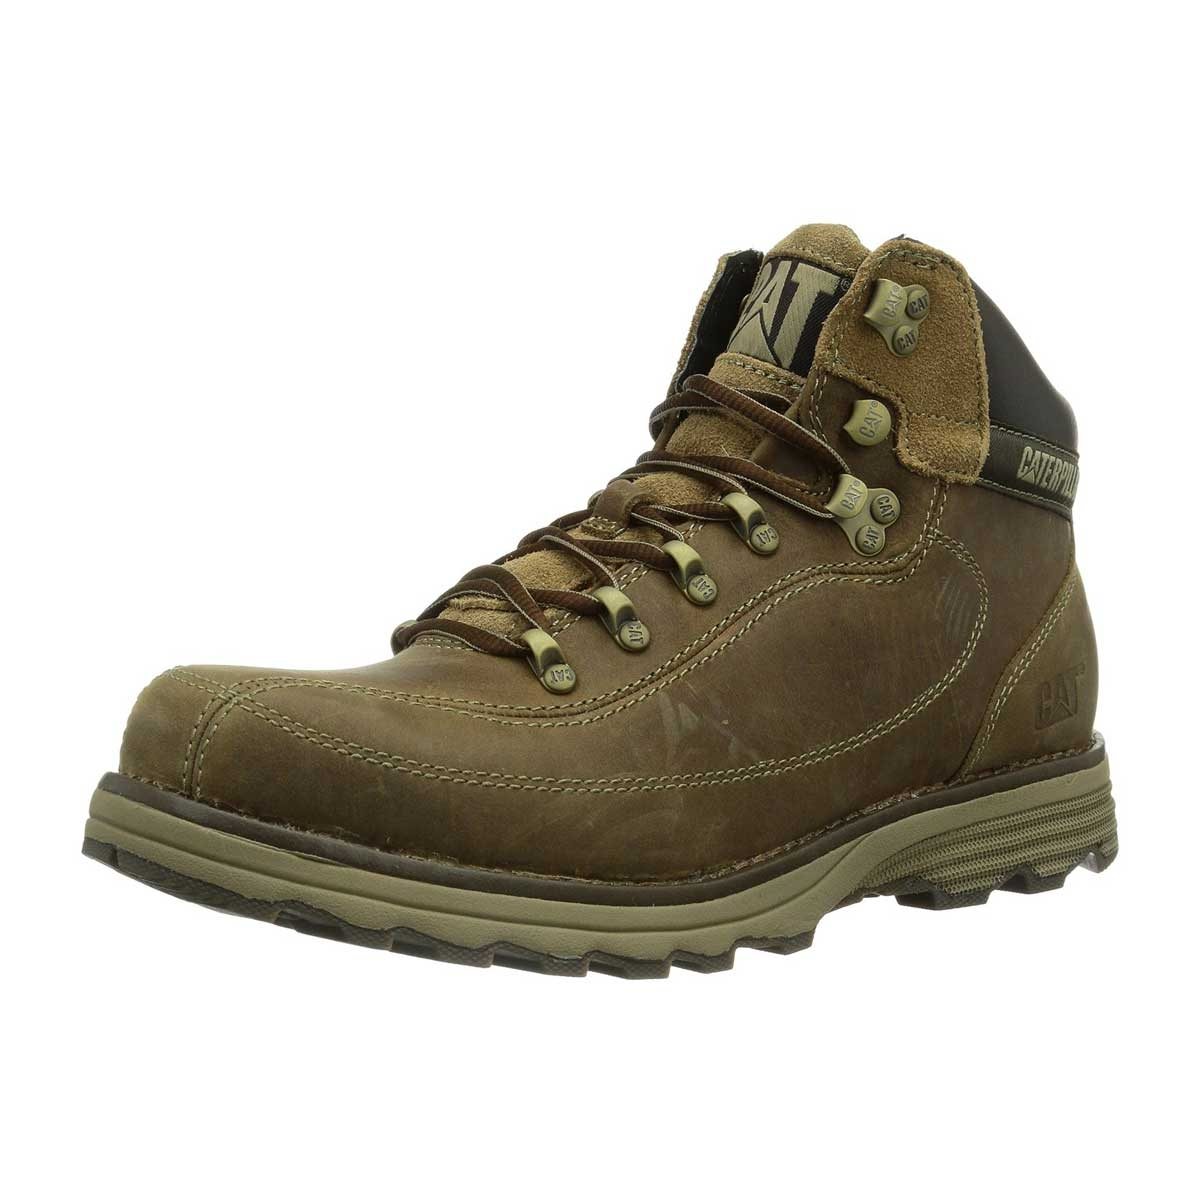 CAT Highbury Mens Walking Boots (Men's) - Desert / Cocoa | Uttings ...